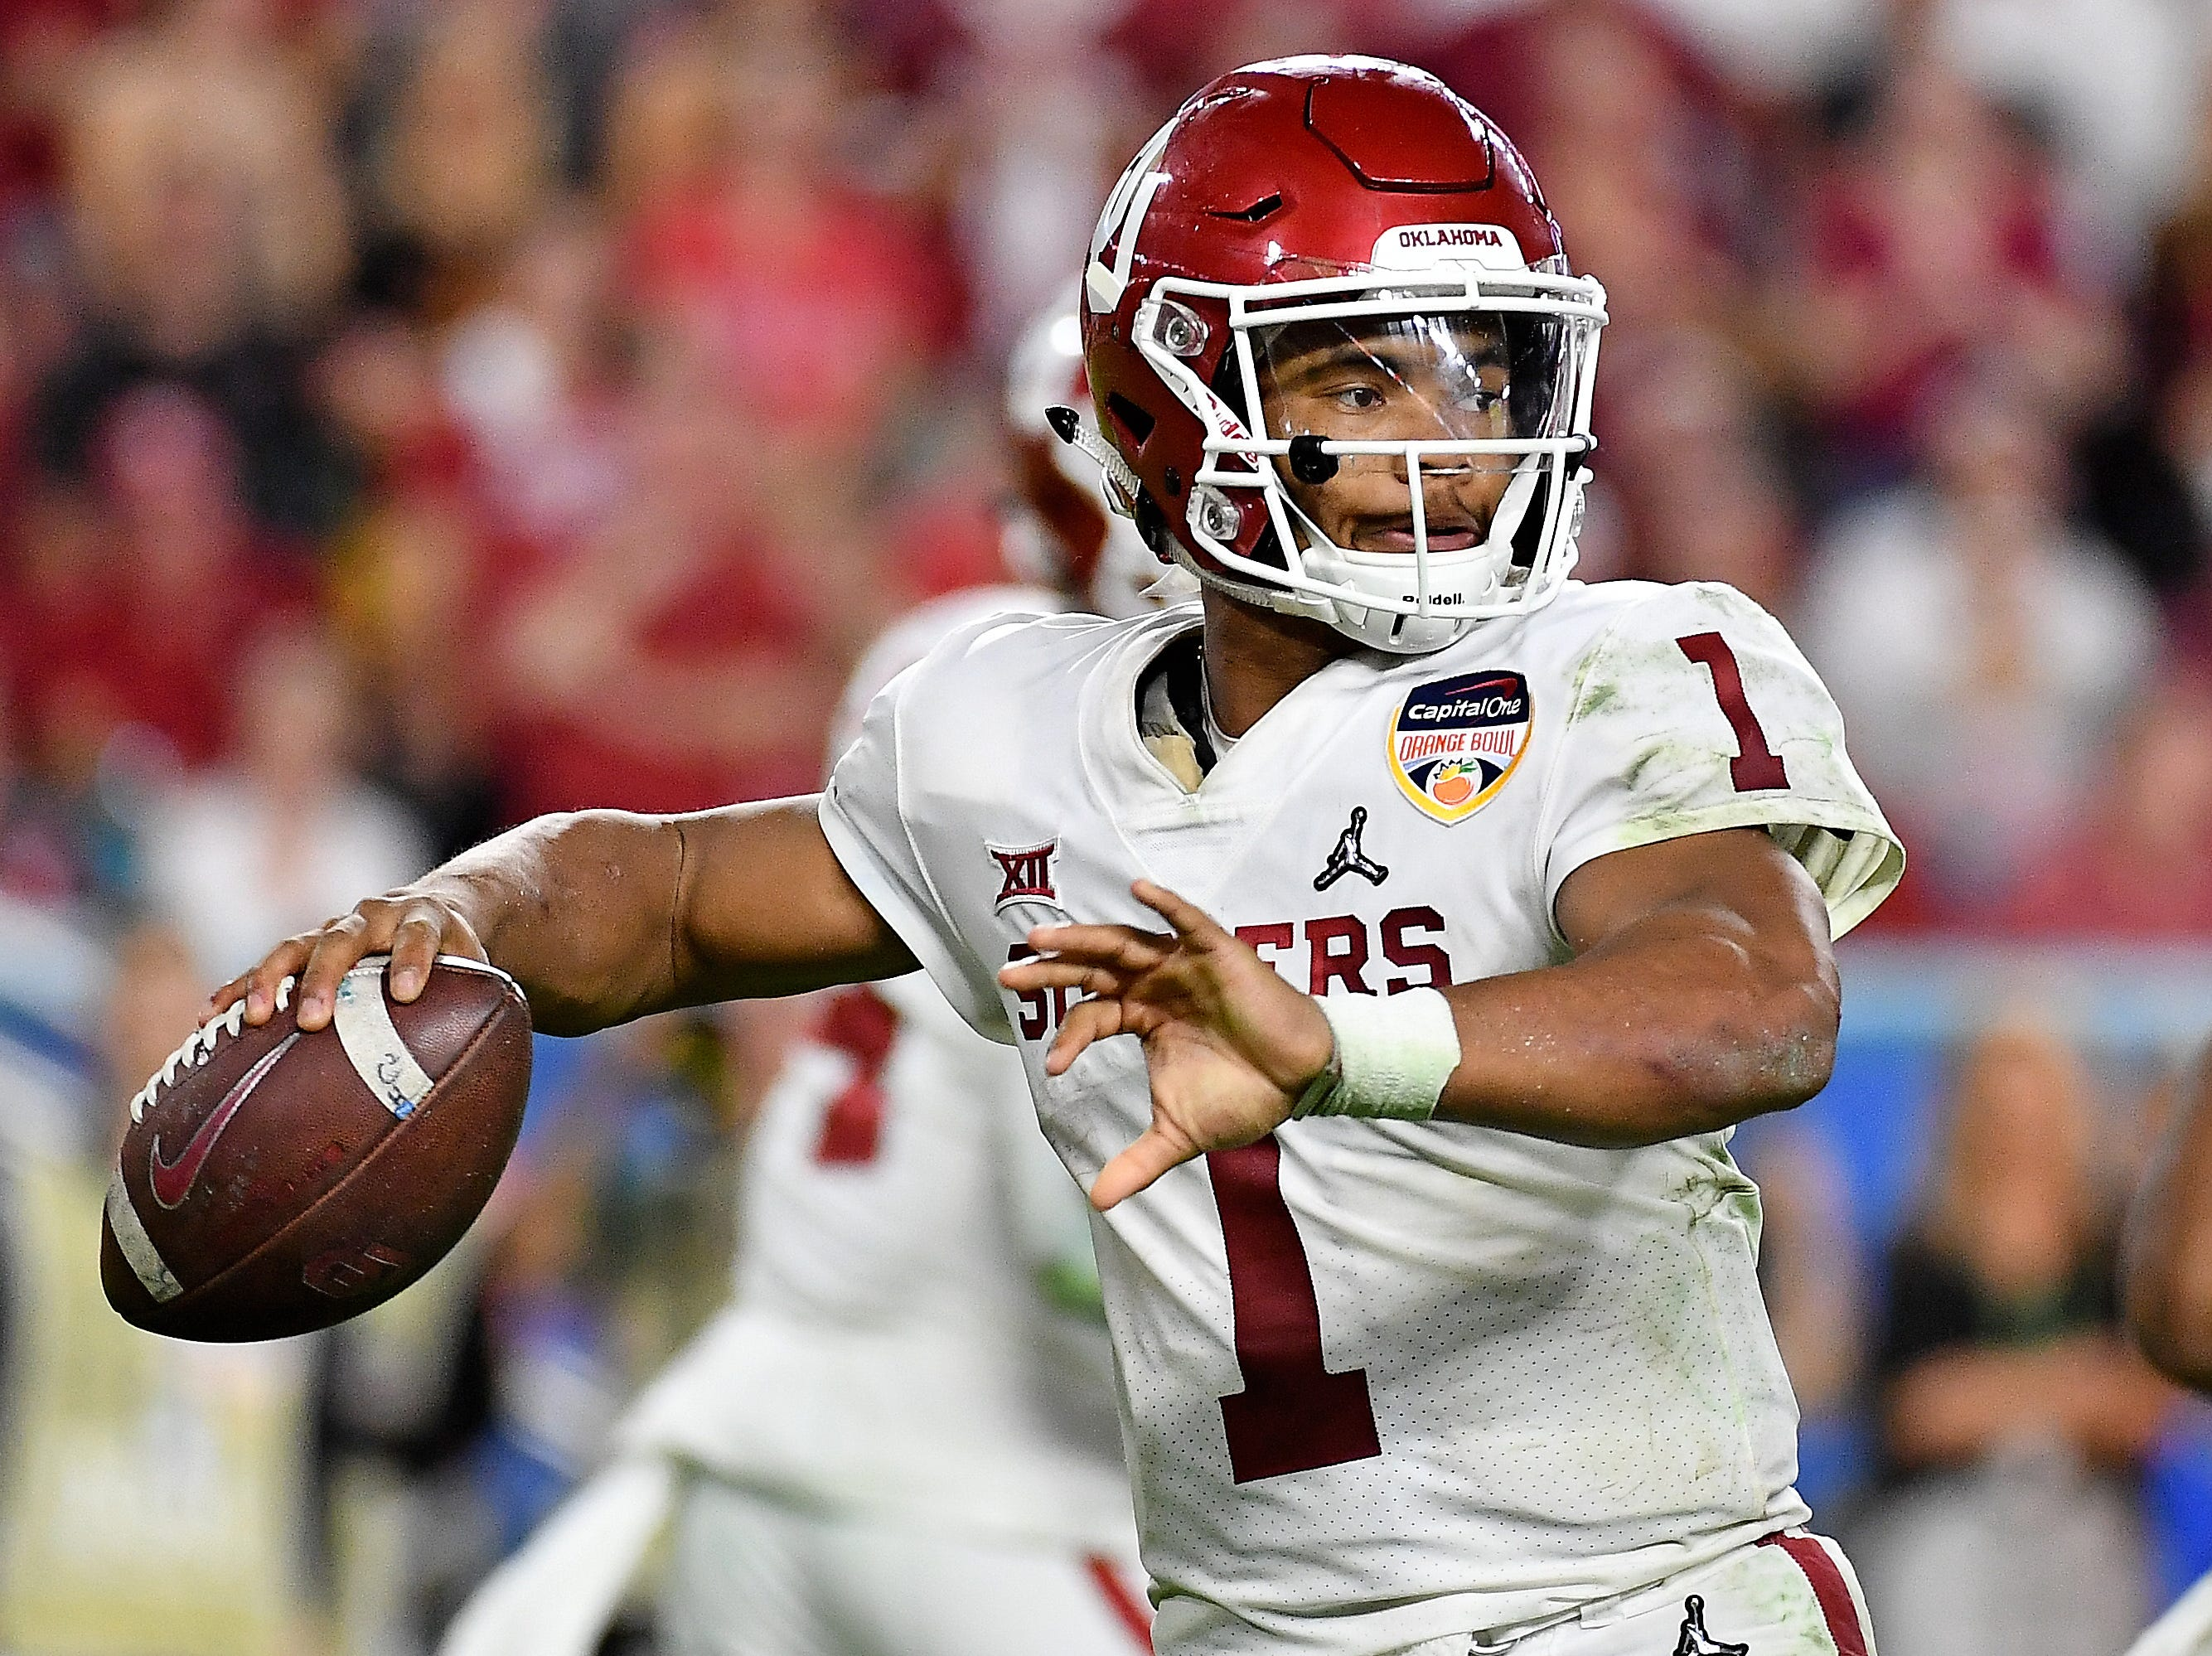 Oklahoma Sooners quarterback Kyler Murray (1) could be taking his talents to the NFL. Could he be a first-round pick?